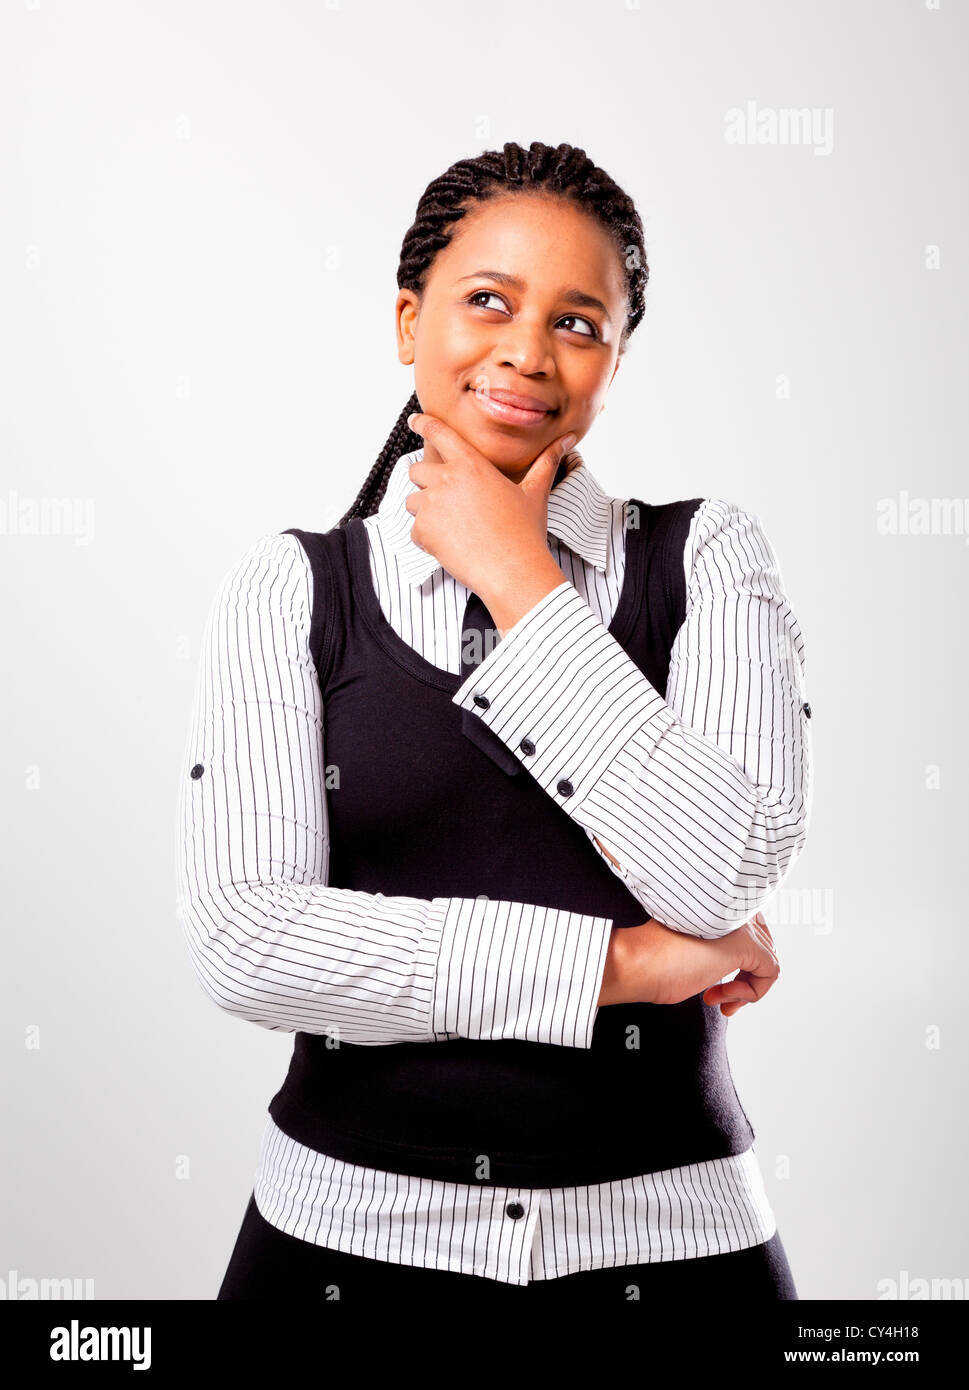 Portrait of an African woman with an inquisitive manner on an isolated background - Stock Image